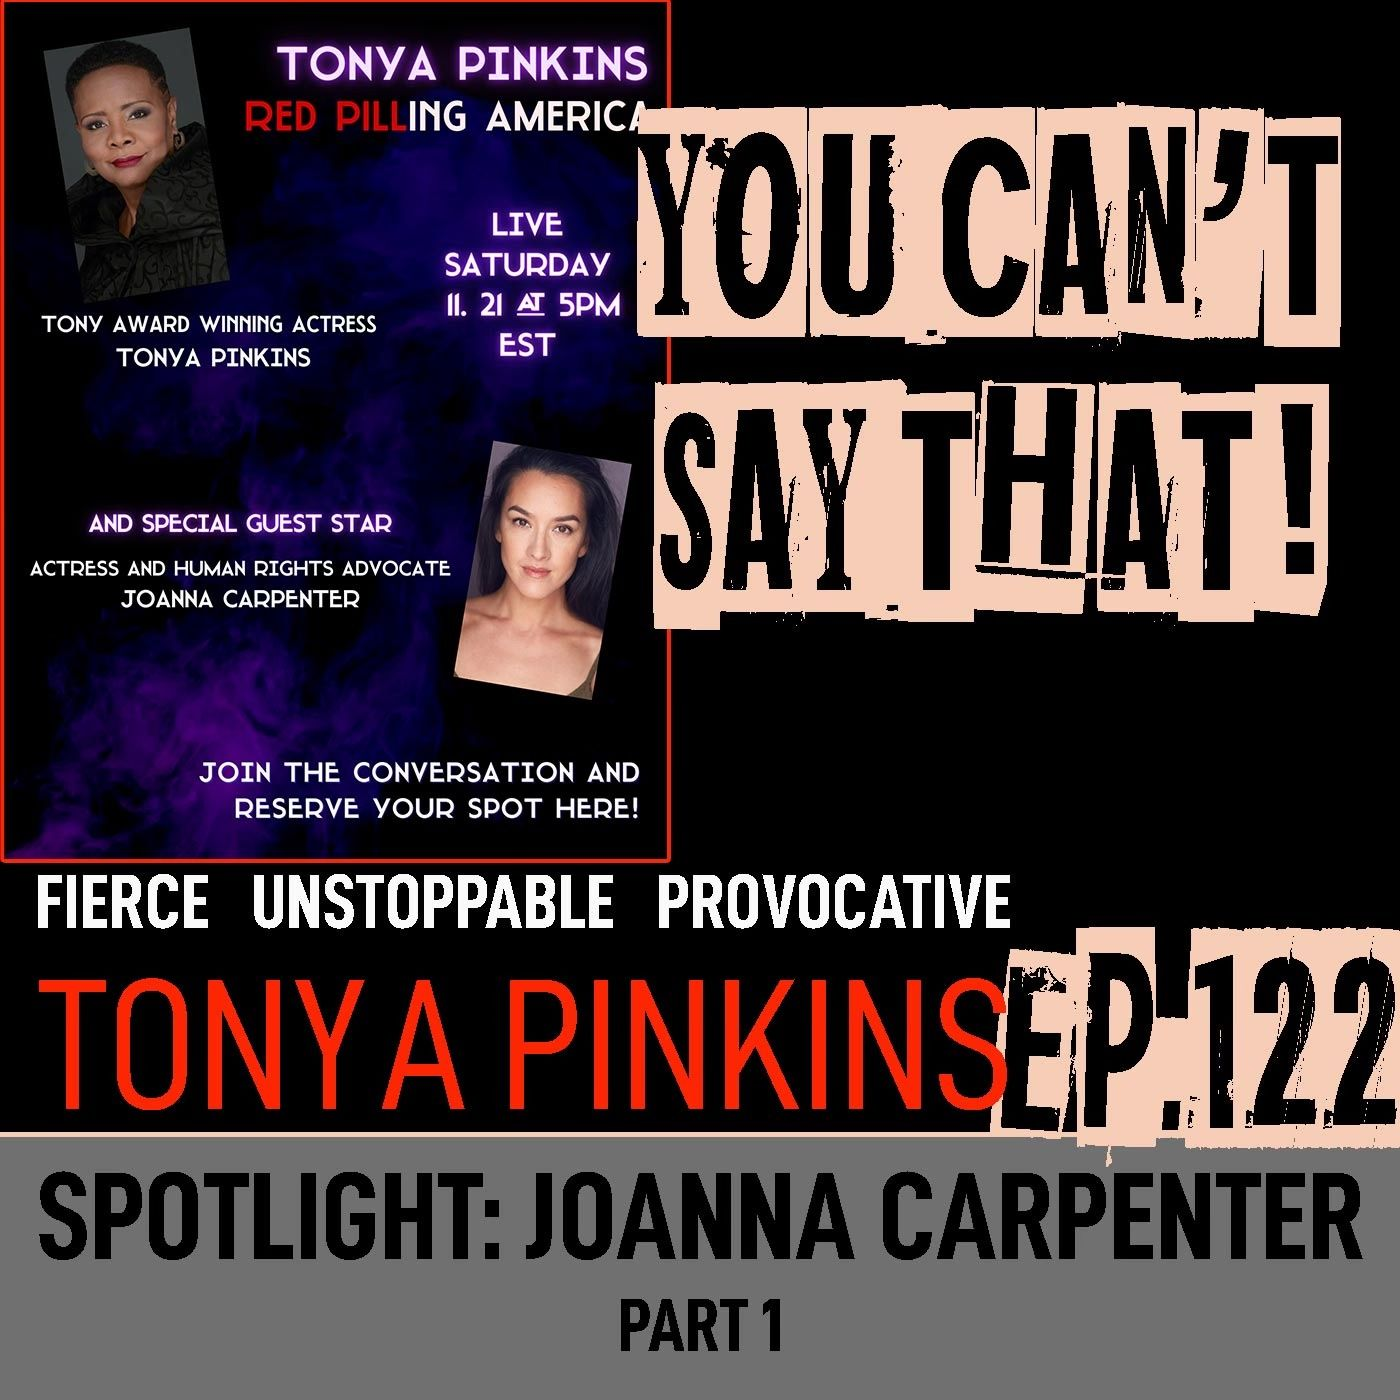 Ep122 - SPOTLIGHT: Red Pilling America with with Joanna Carpenter (Part 1)